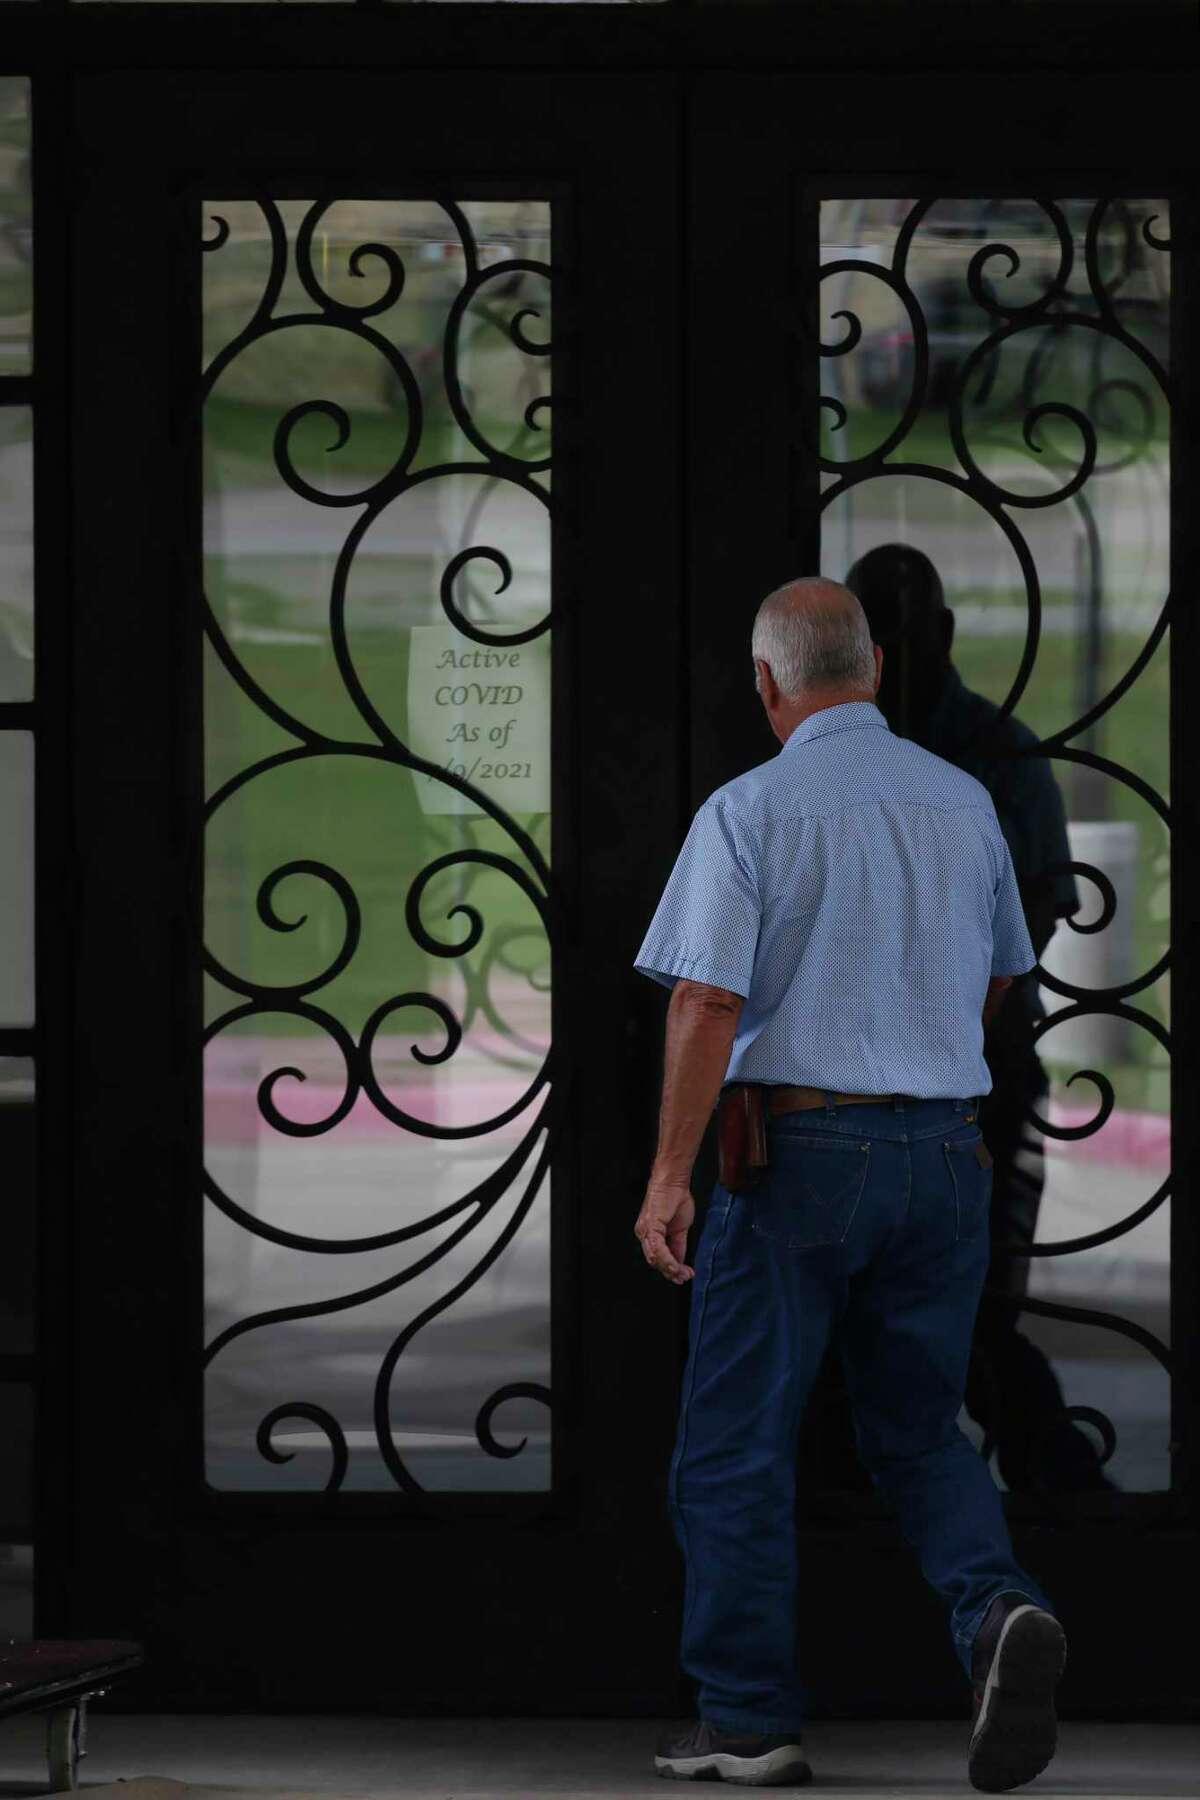 A person arrives at the Heartis San Antonio assisted living and memory care facility on Huebner Road, Thursday, July 15, 2021.